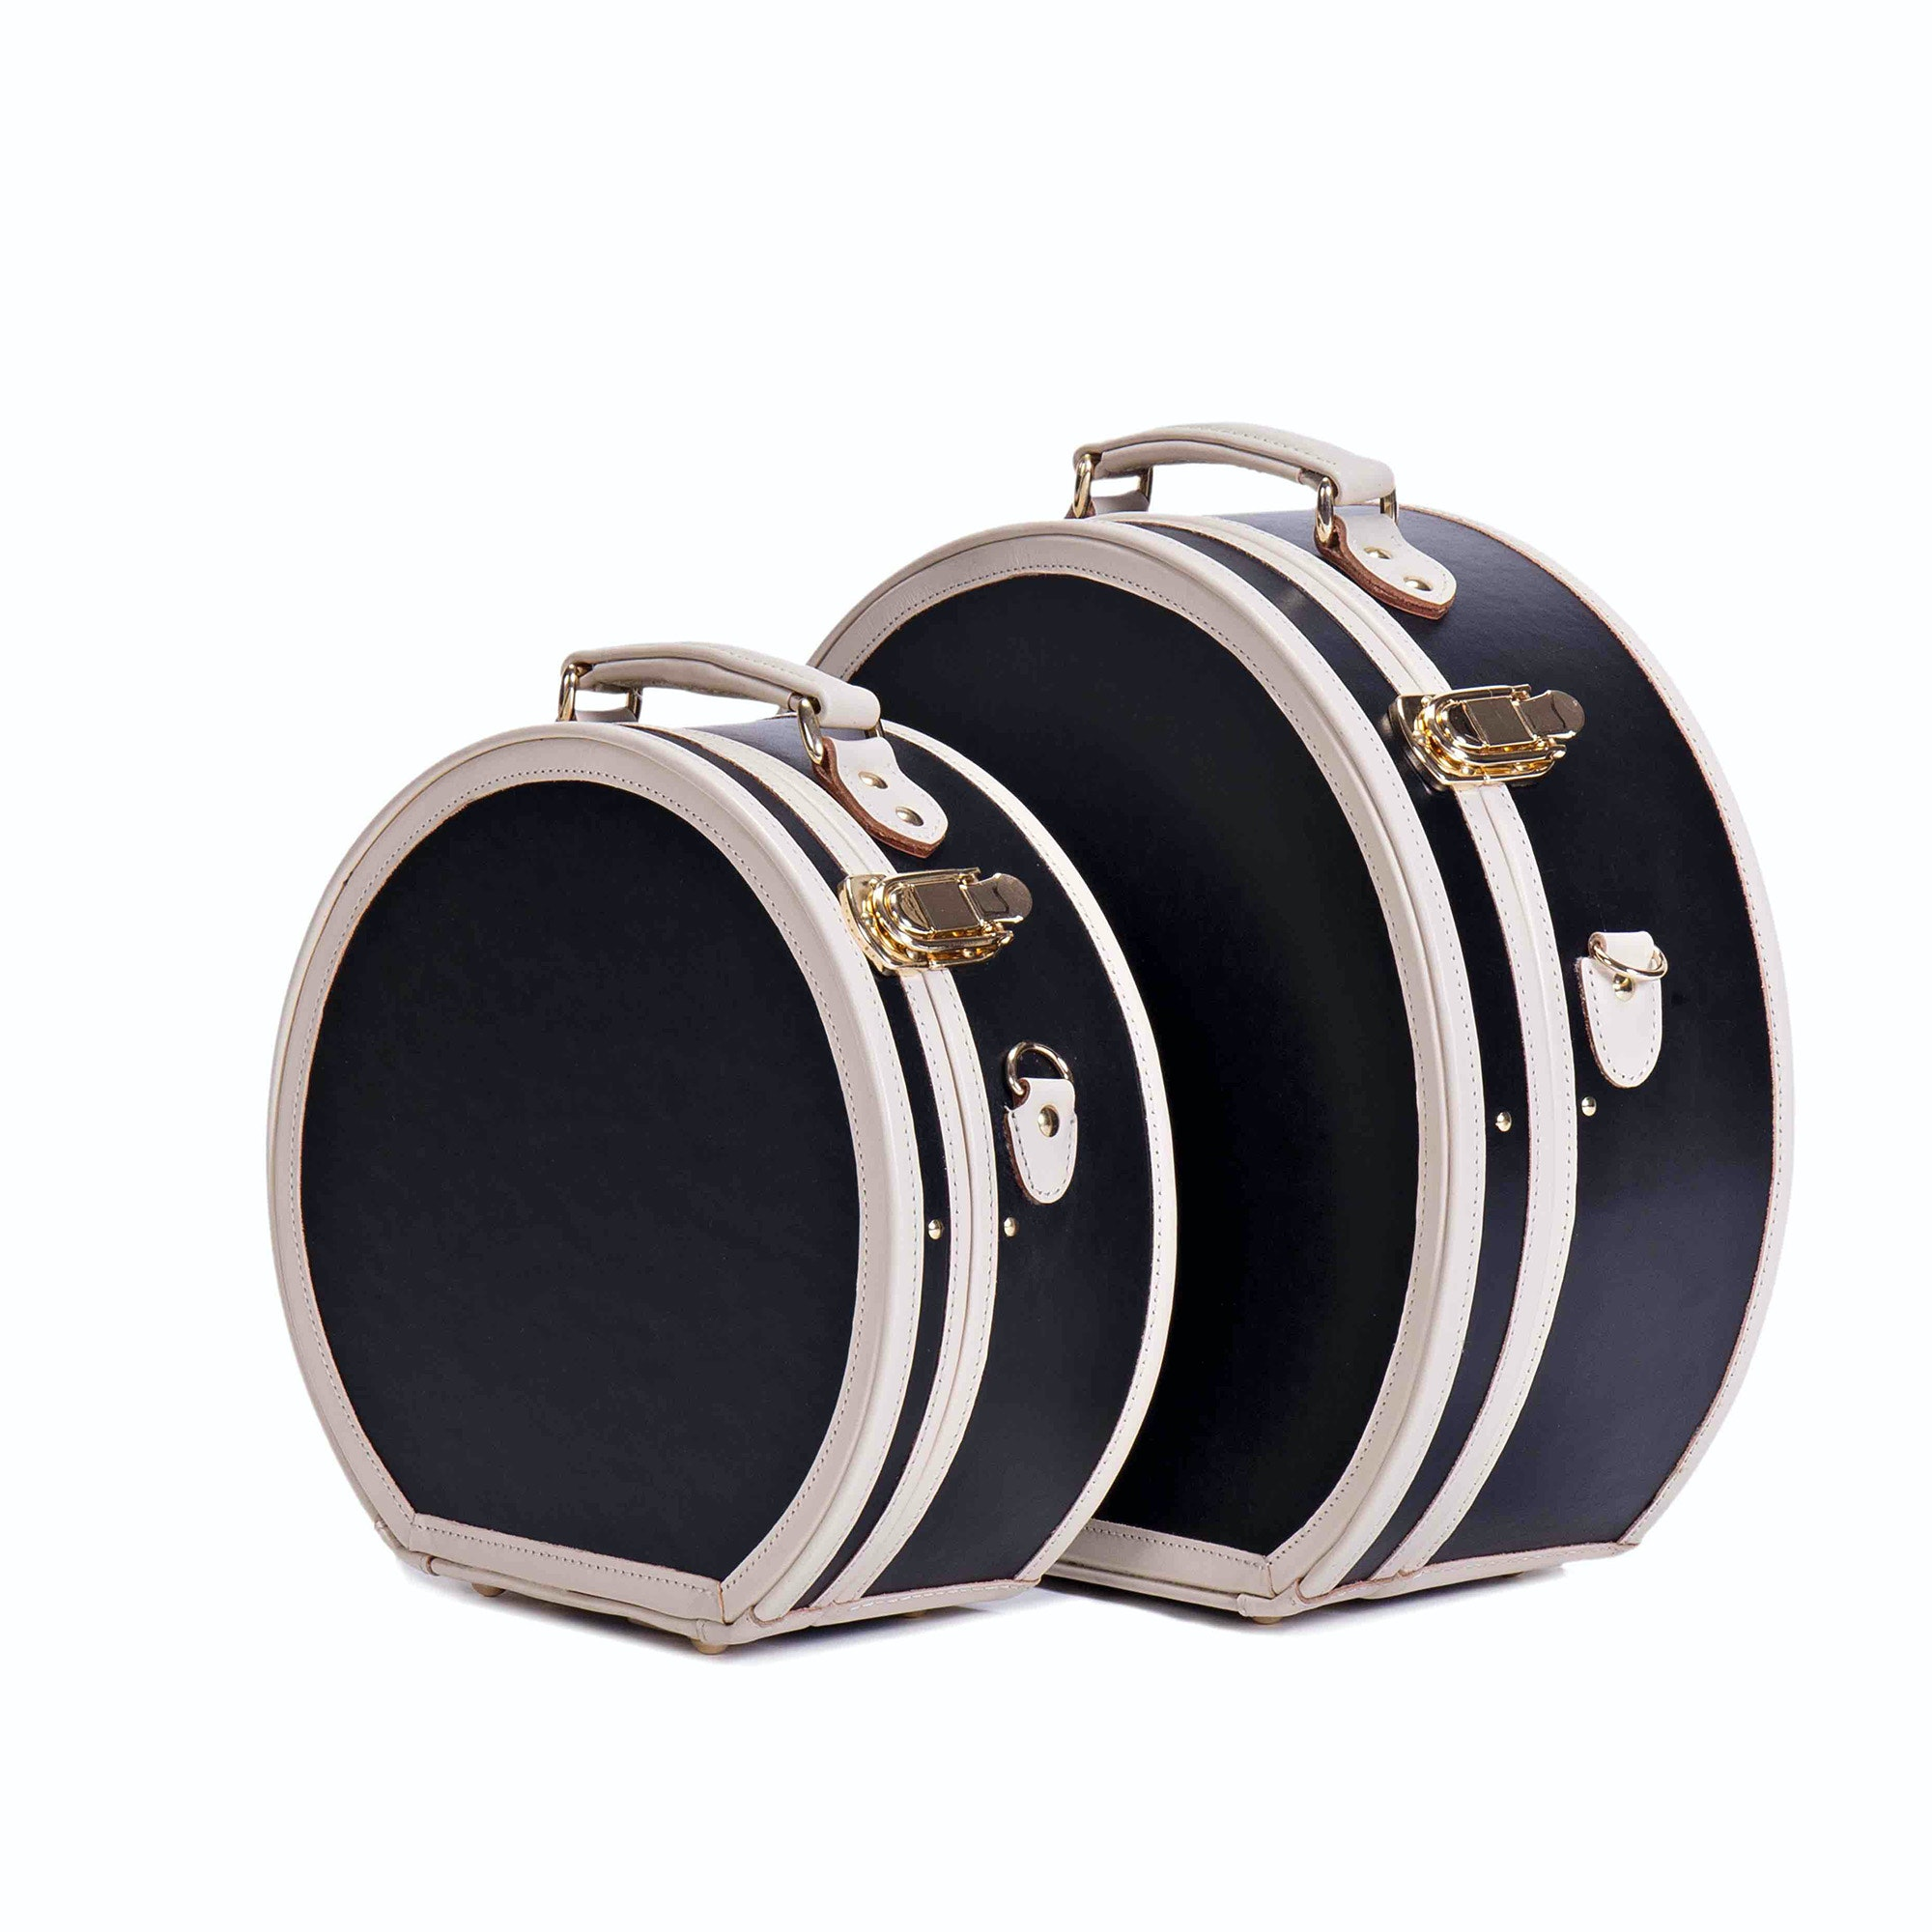 Steamline Luggage is 20 percent off on Black Friday.